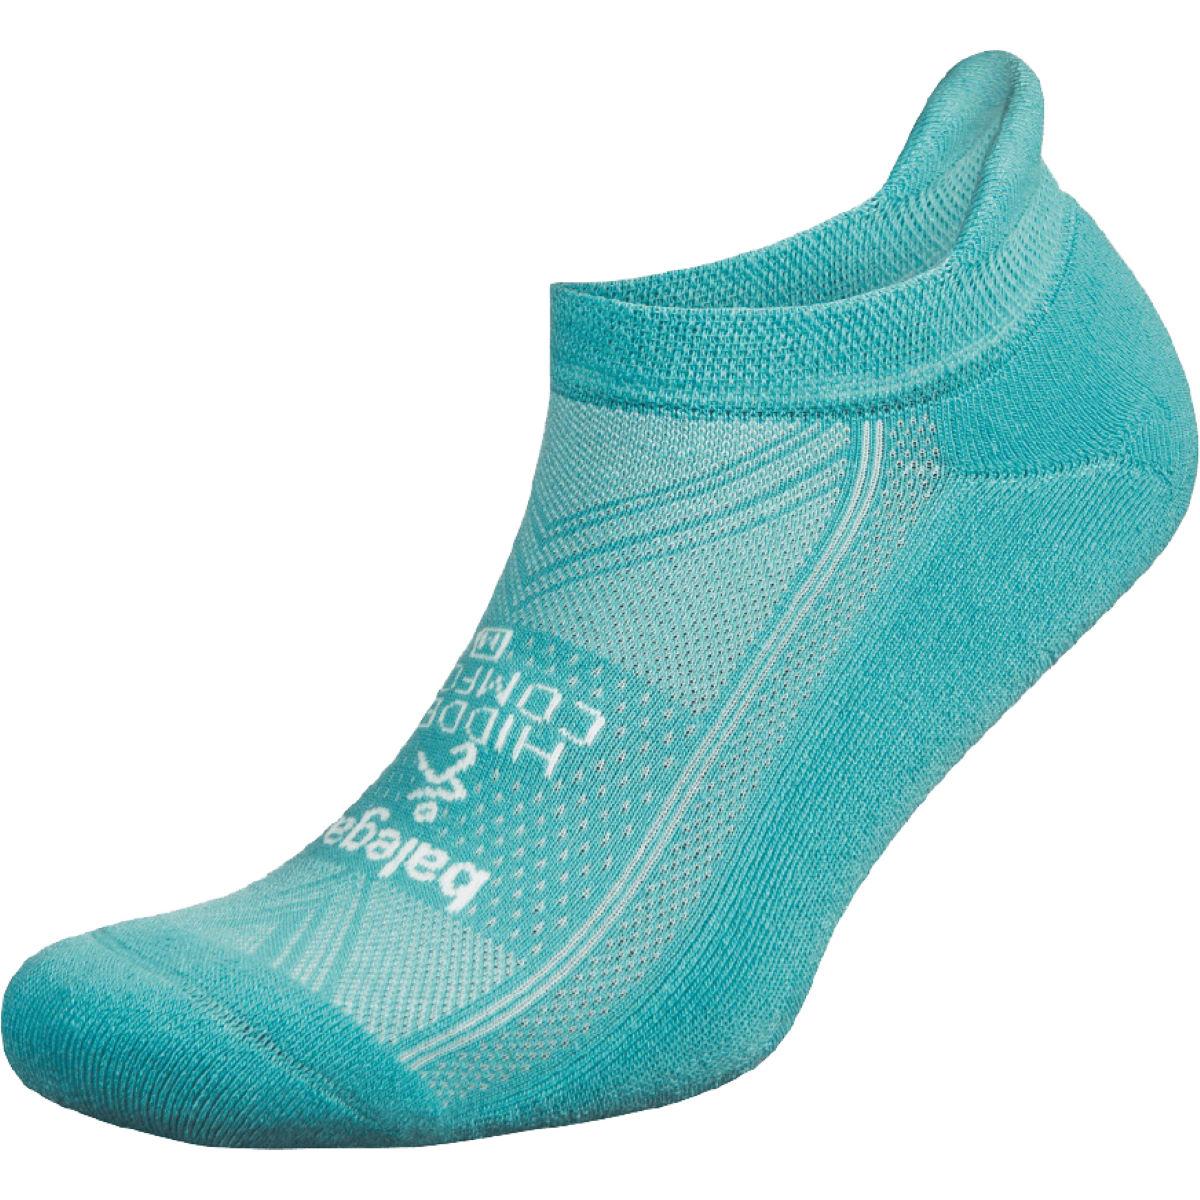 Chaussettes basses Femme Balega Hidden Comfort - Small Blue Radiance